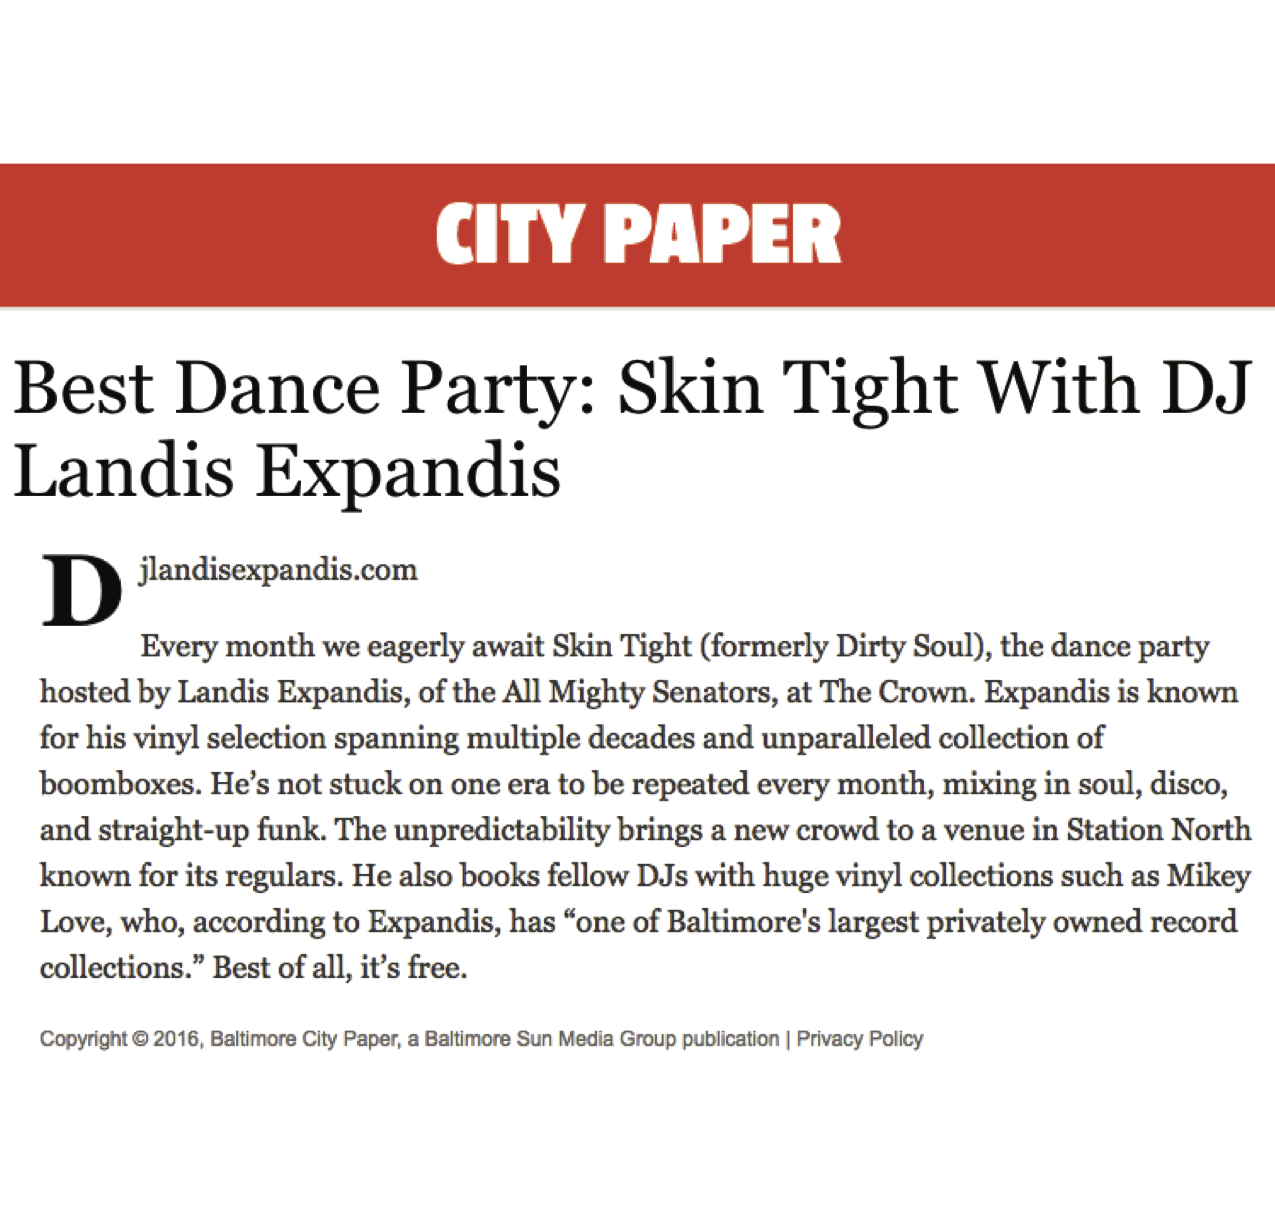 City Paper best party